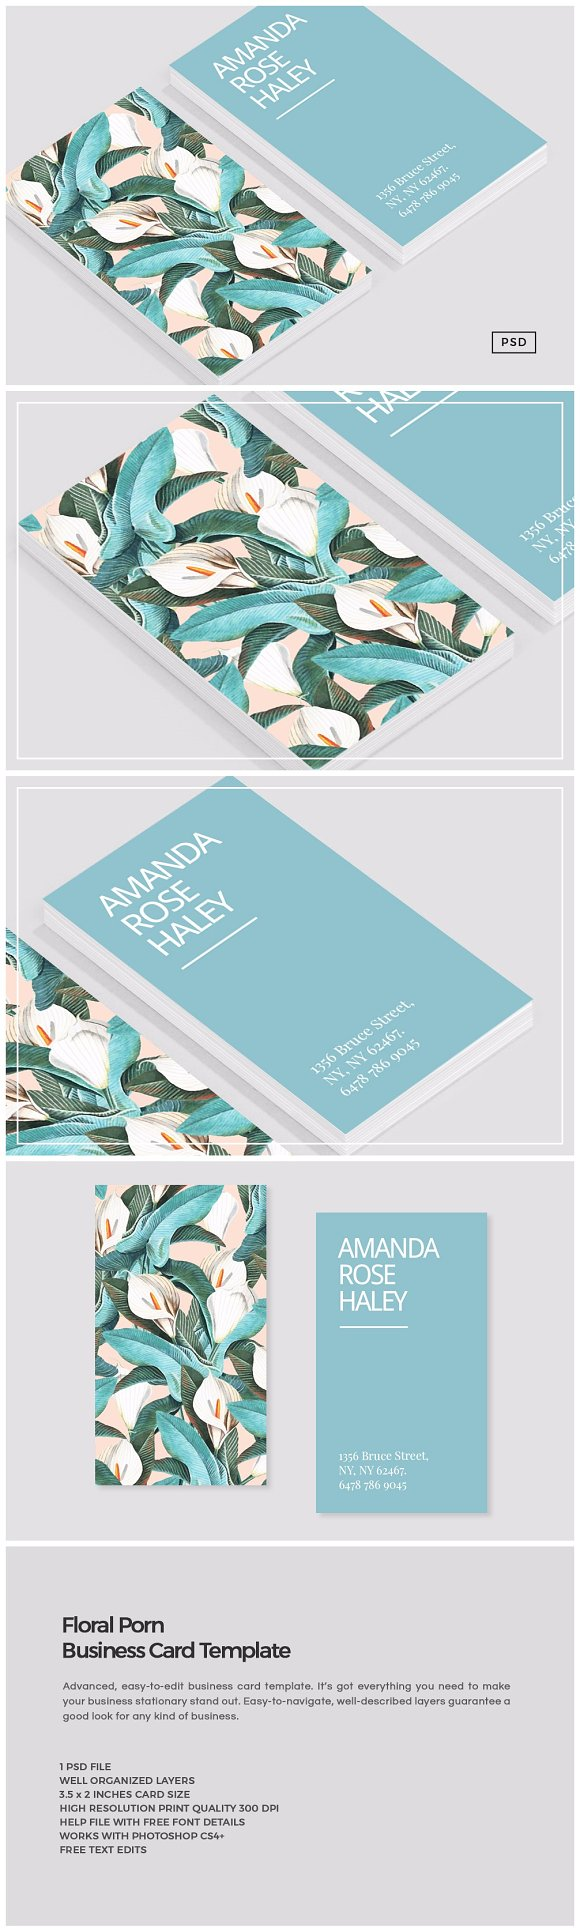 Floral porn business card template business card templates floral porn business card template business card templates creative market reheart Gallery